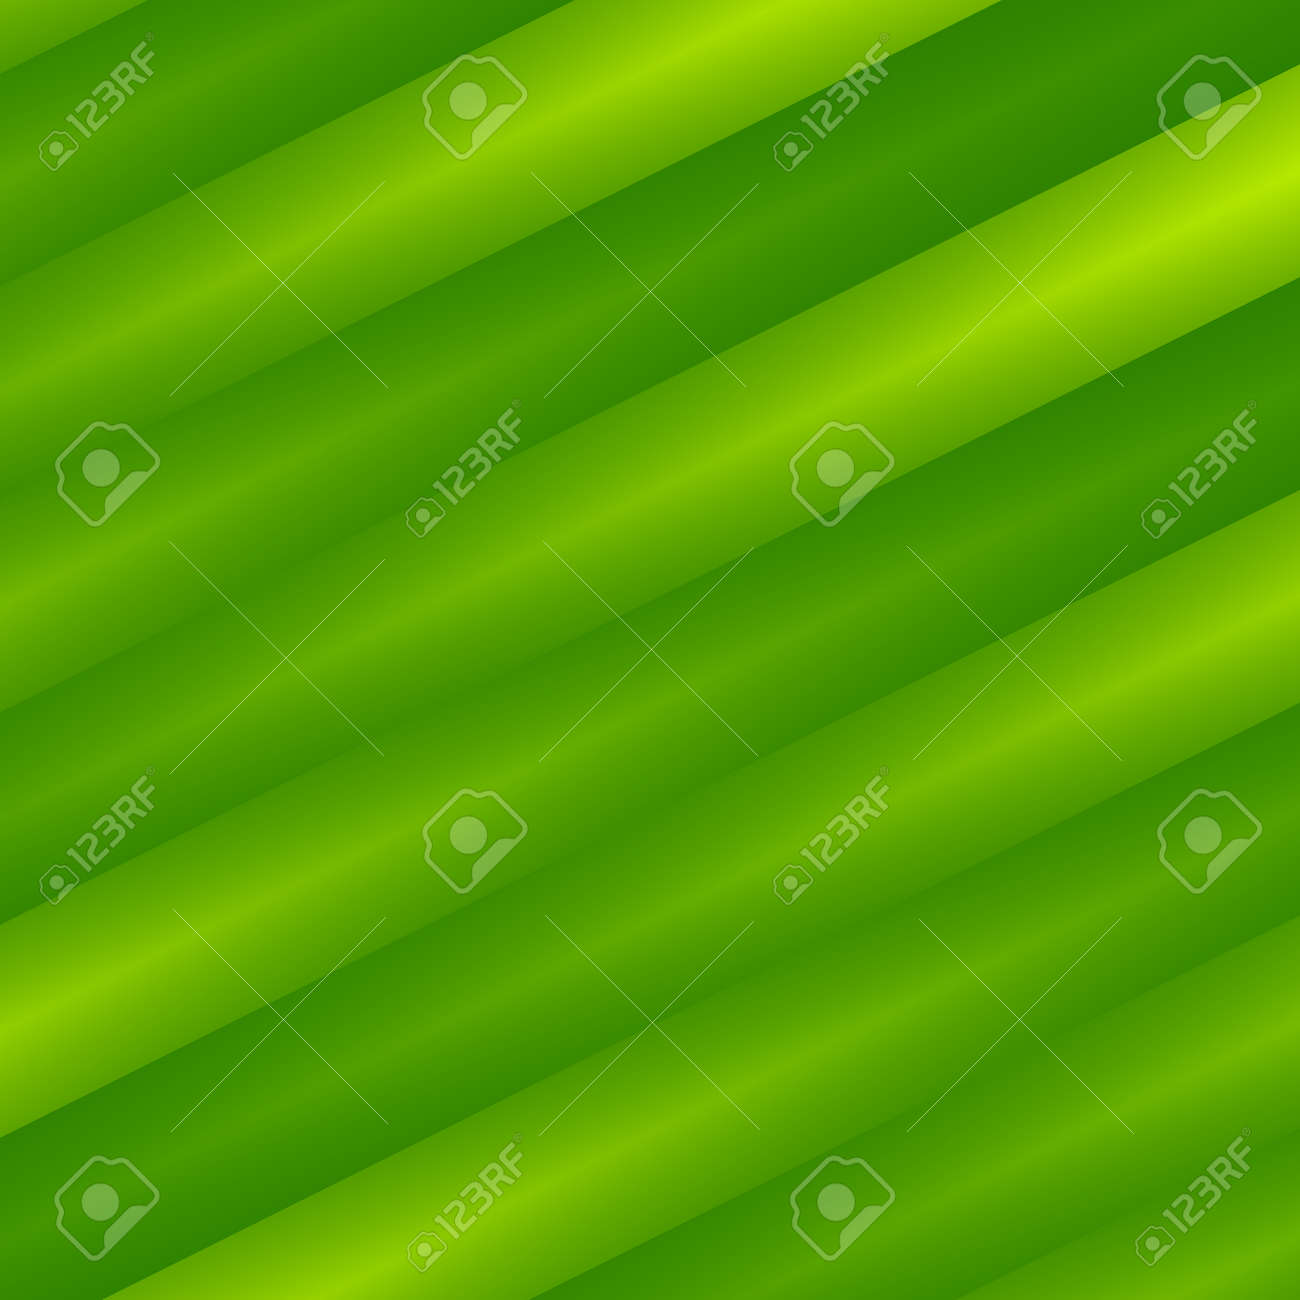 Diagonal Blending Green Stripes Background. Odd Artistic Tilt. Blank Logon  Screen Design. Virtual